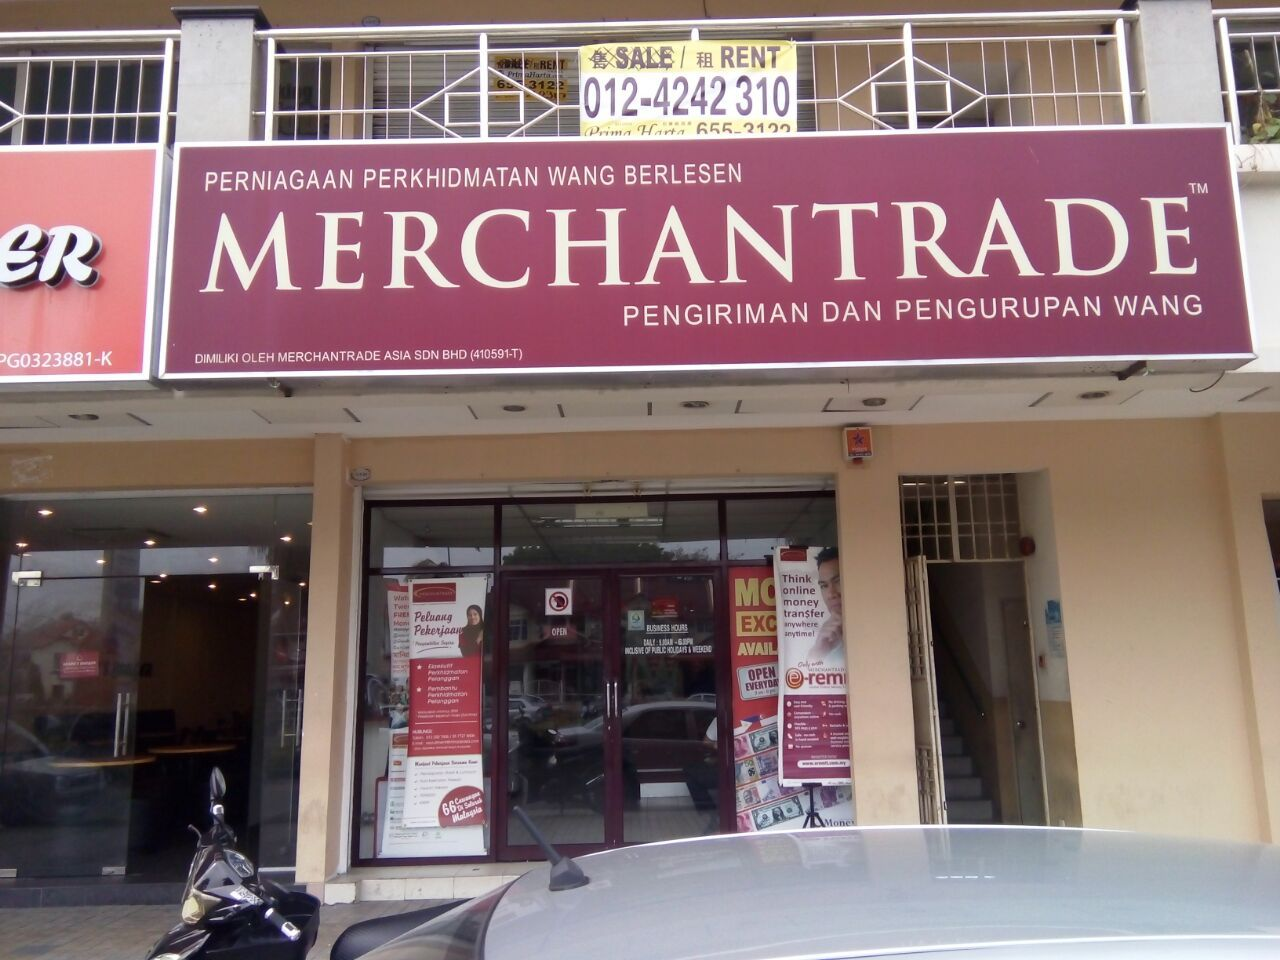 Our Branch In Bayan Lepas Please Do Contact Us For More Details Tel 04 641 0602 Fax 04 641 0603 Decor Home Decor Outdoor Decor